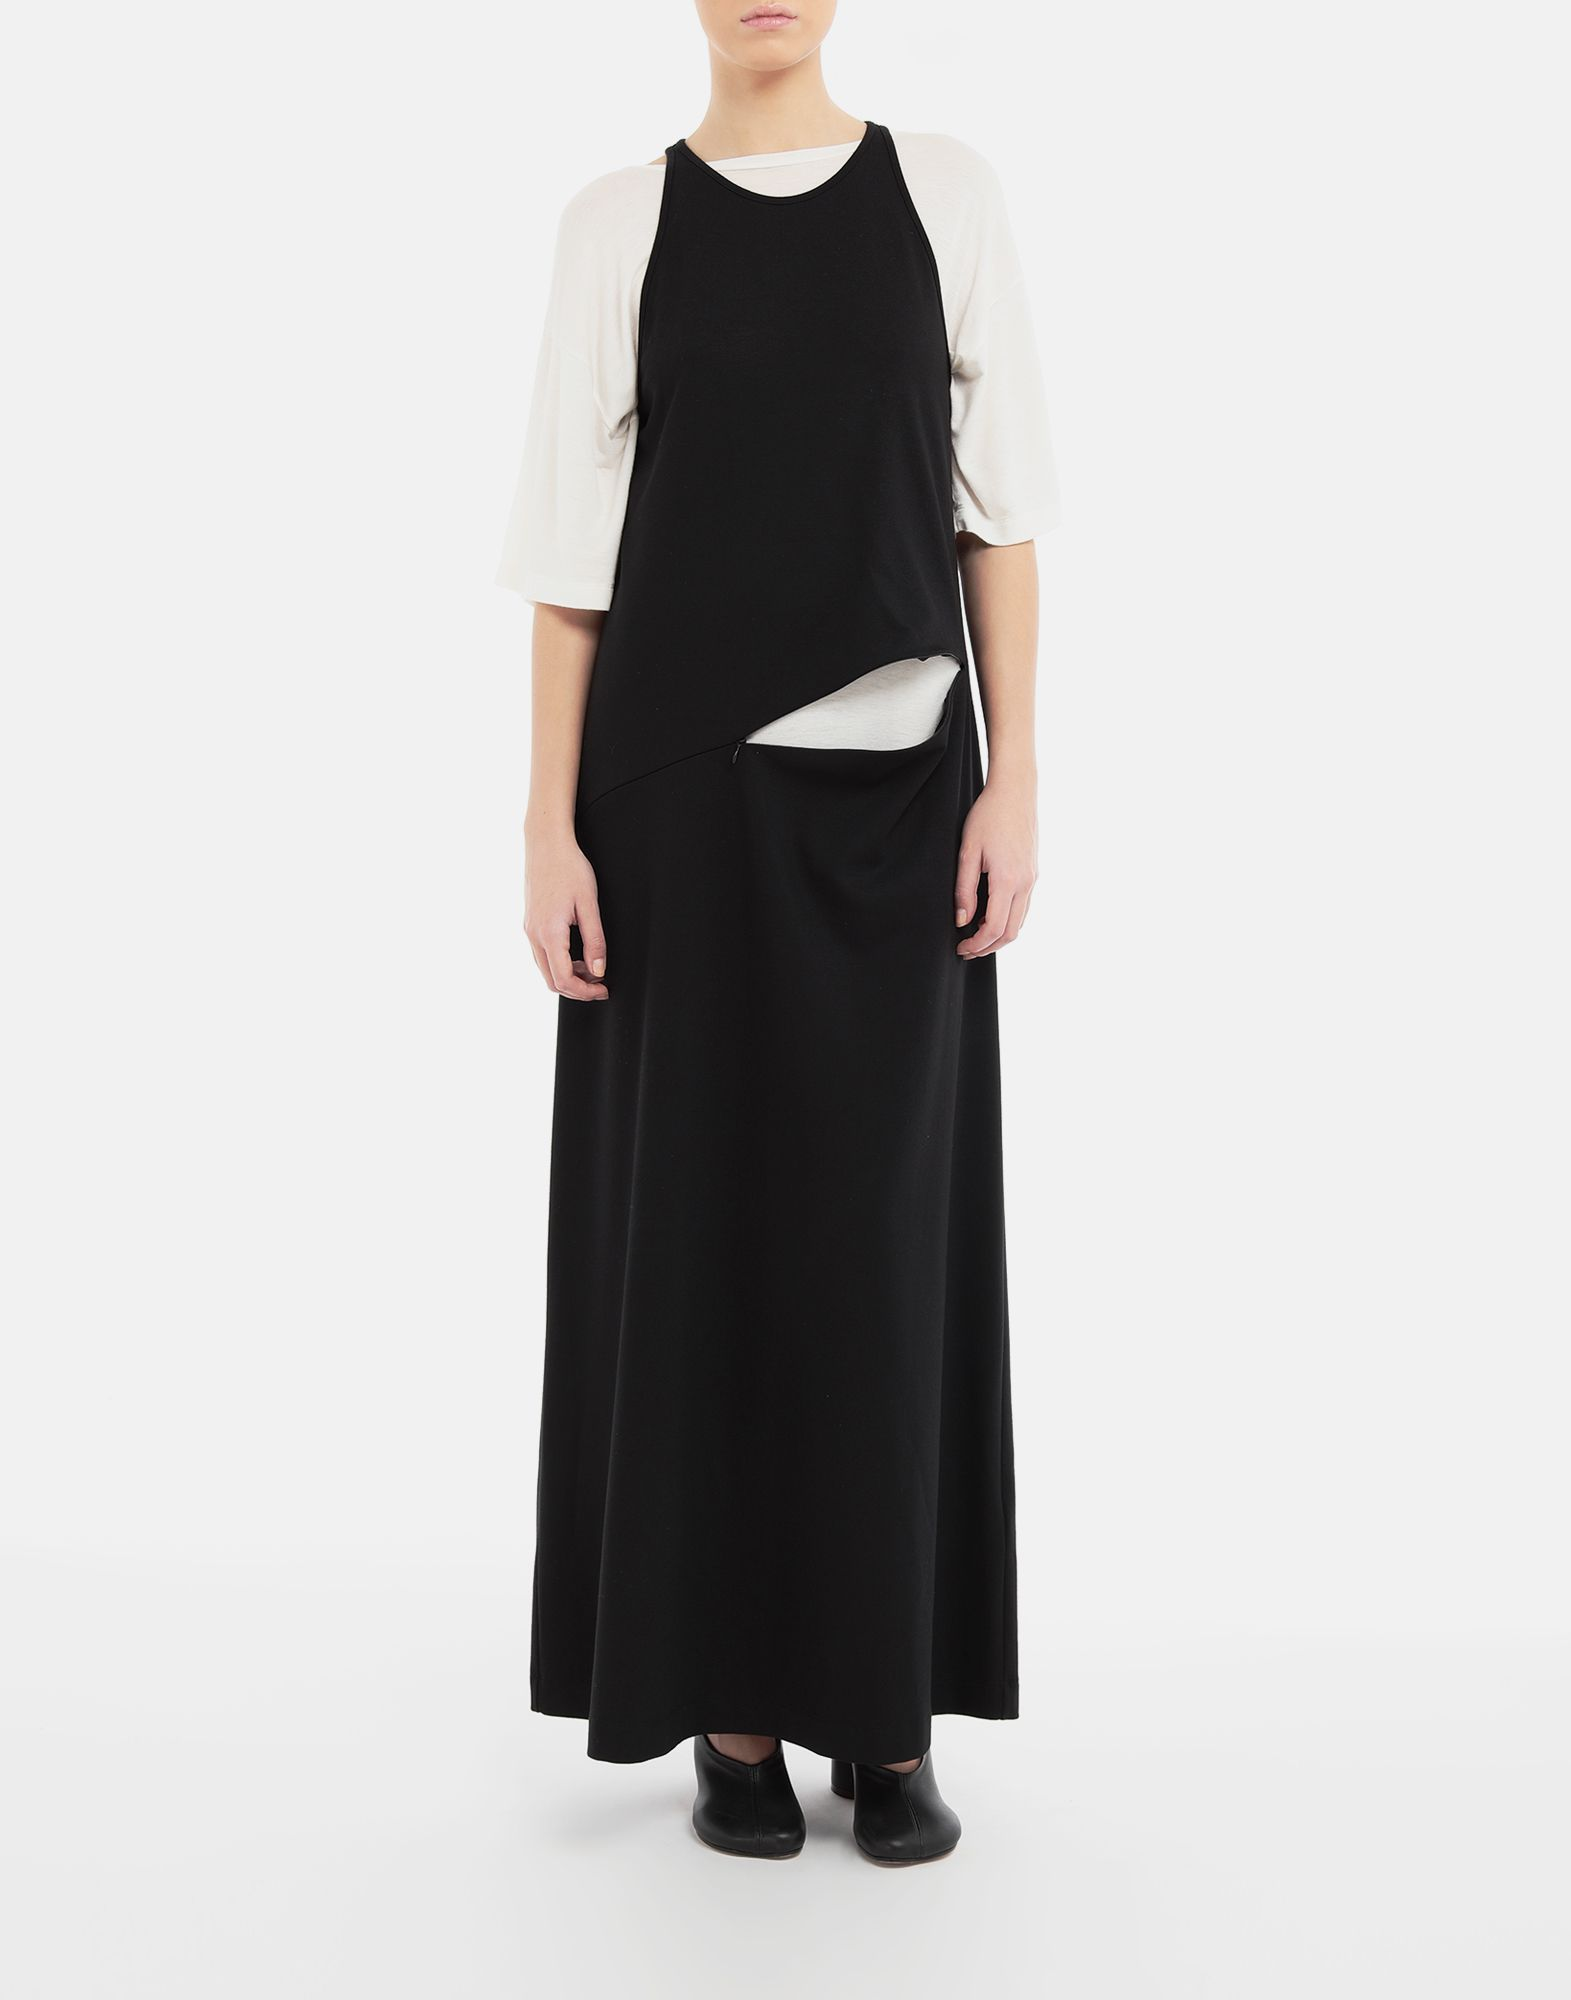 MM6 MAISON MARGIELA Two-part dress 3/4 length dress Woman d